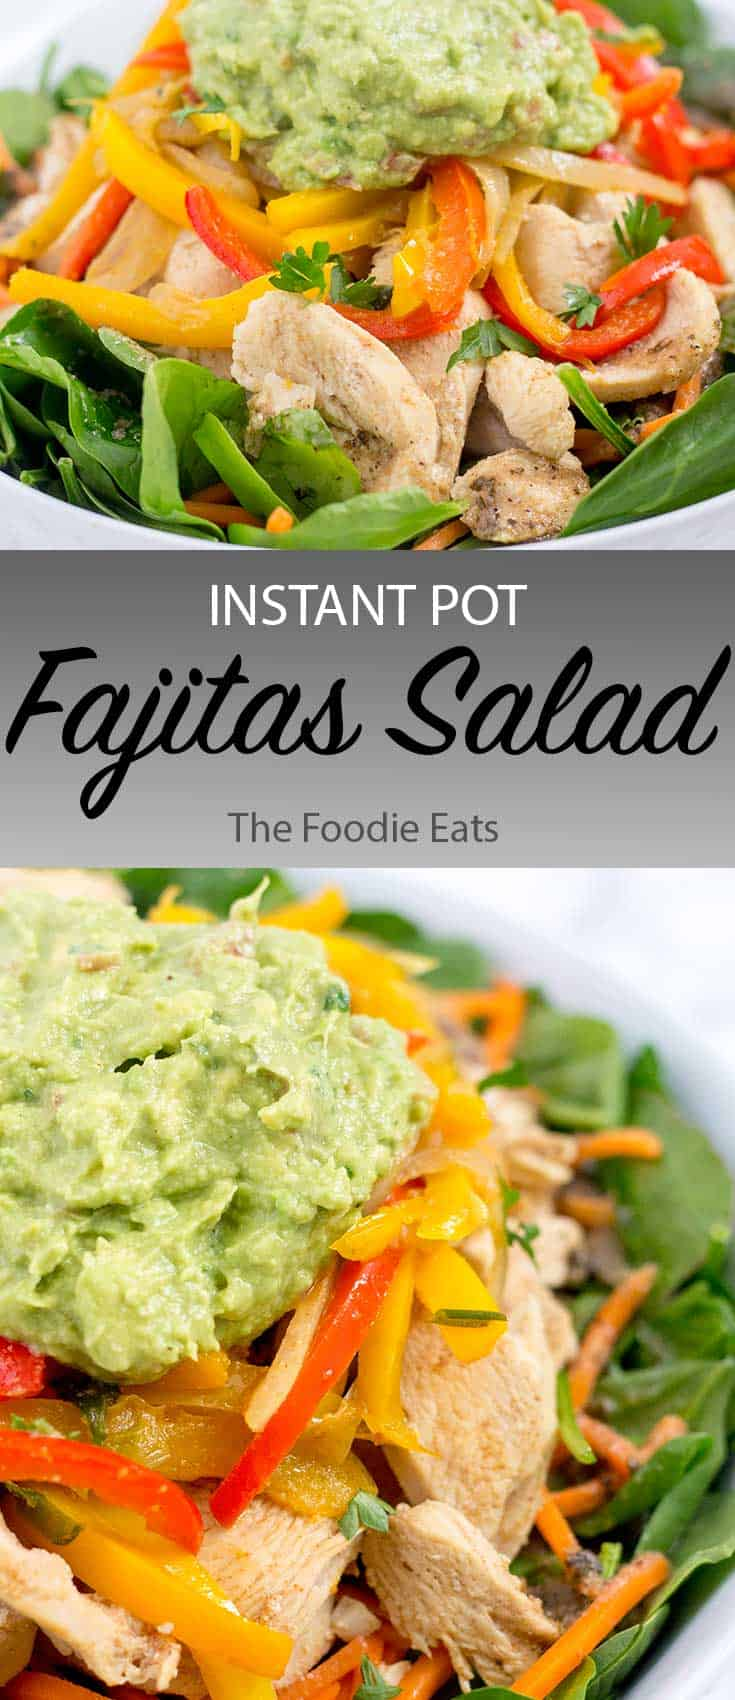 fajitas salad image for Pinterest